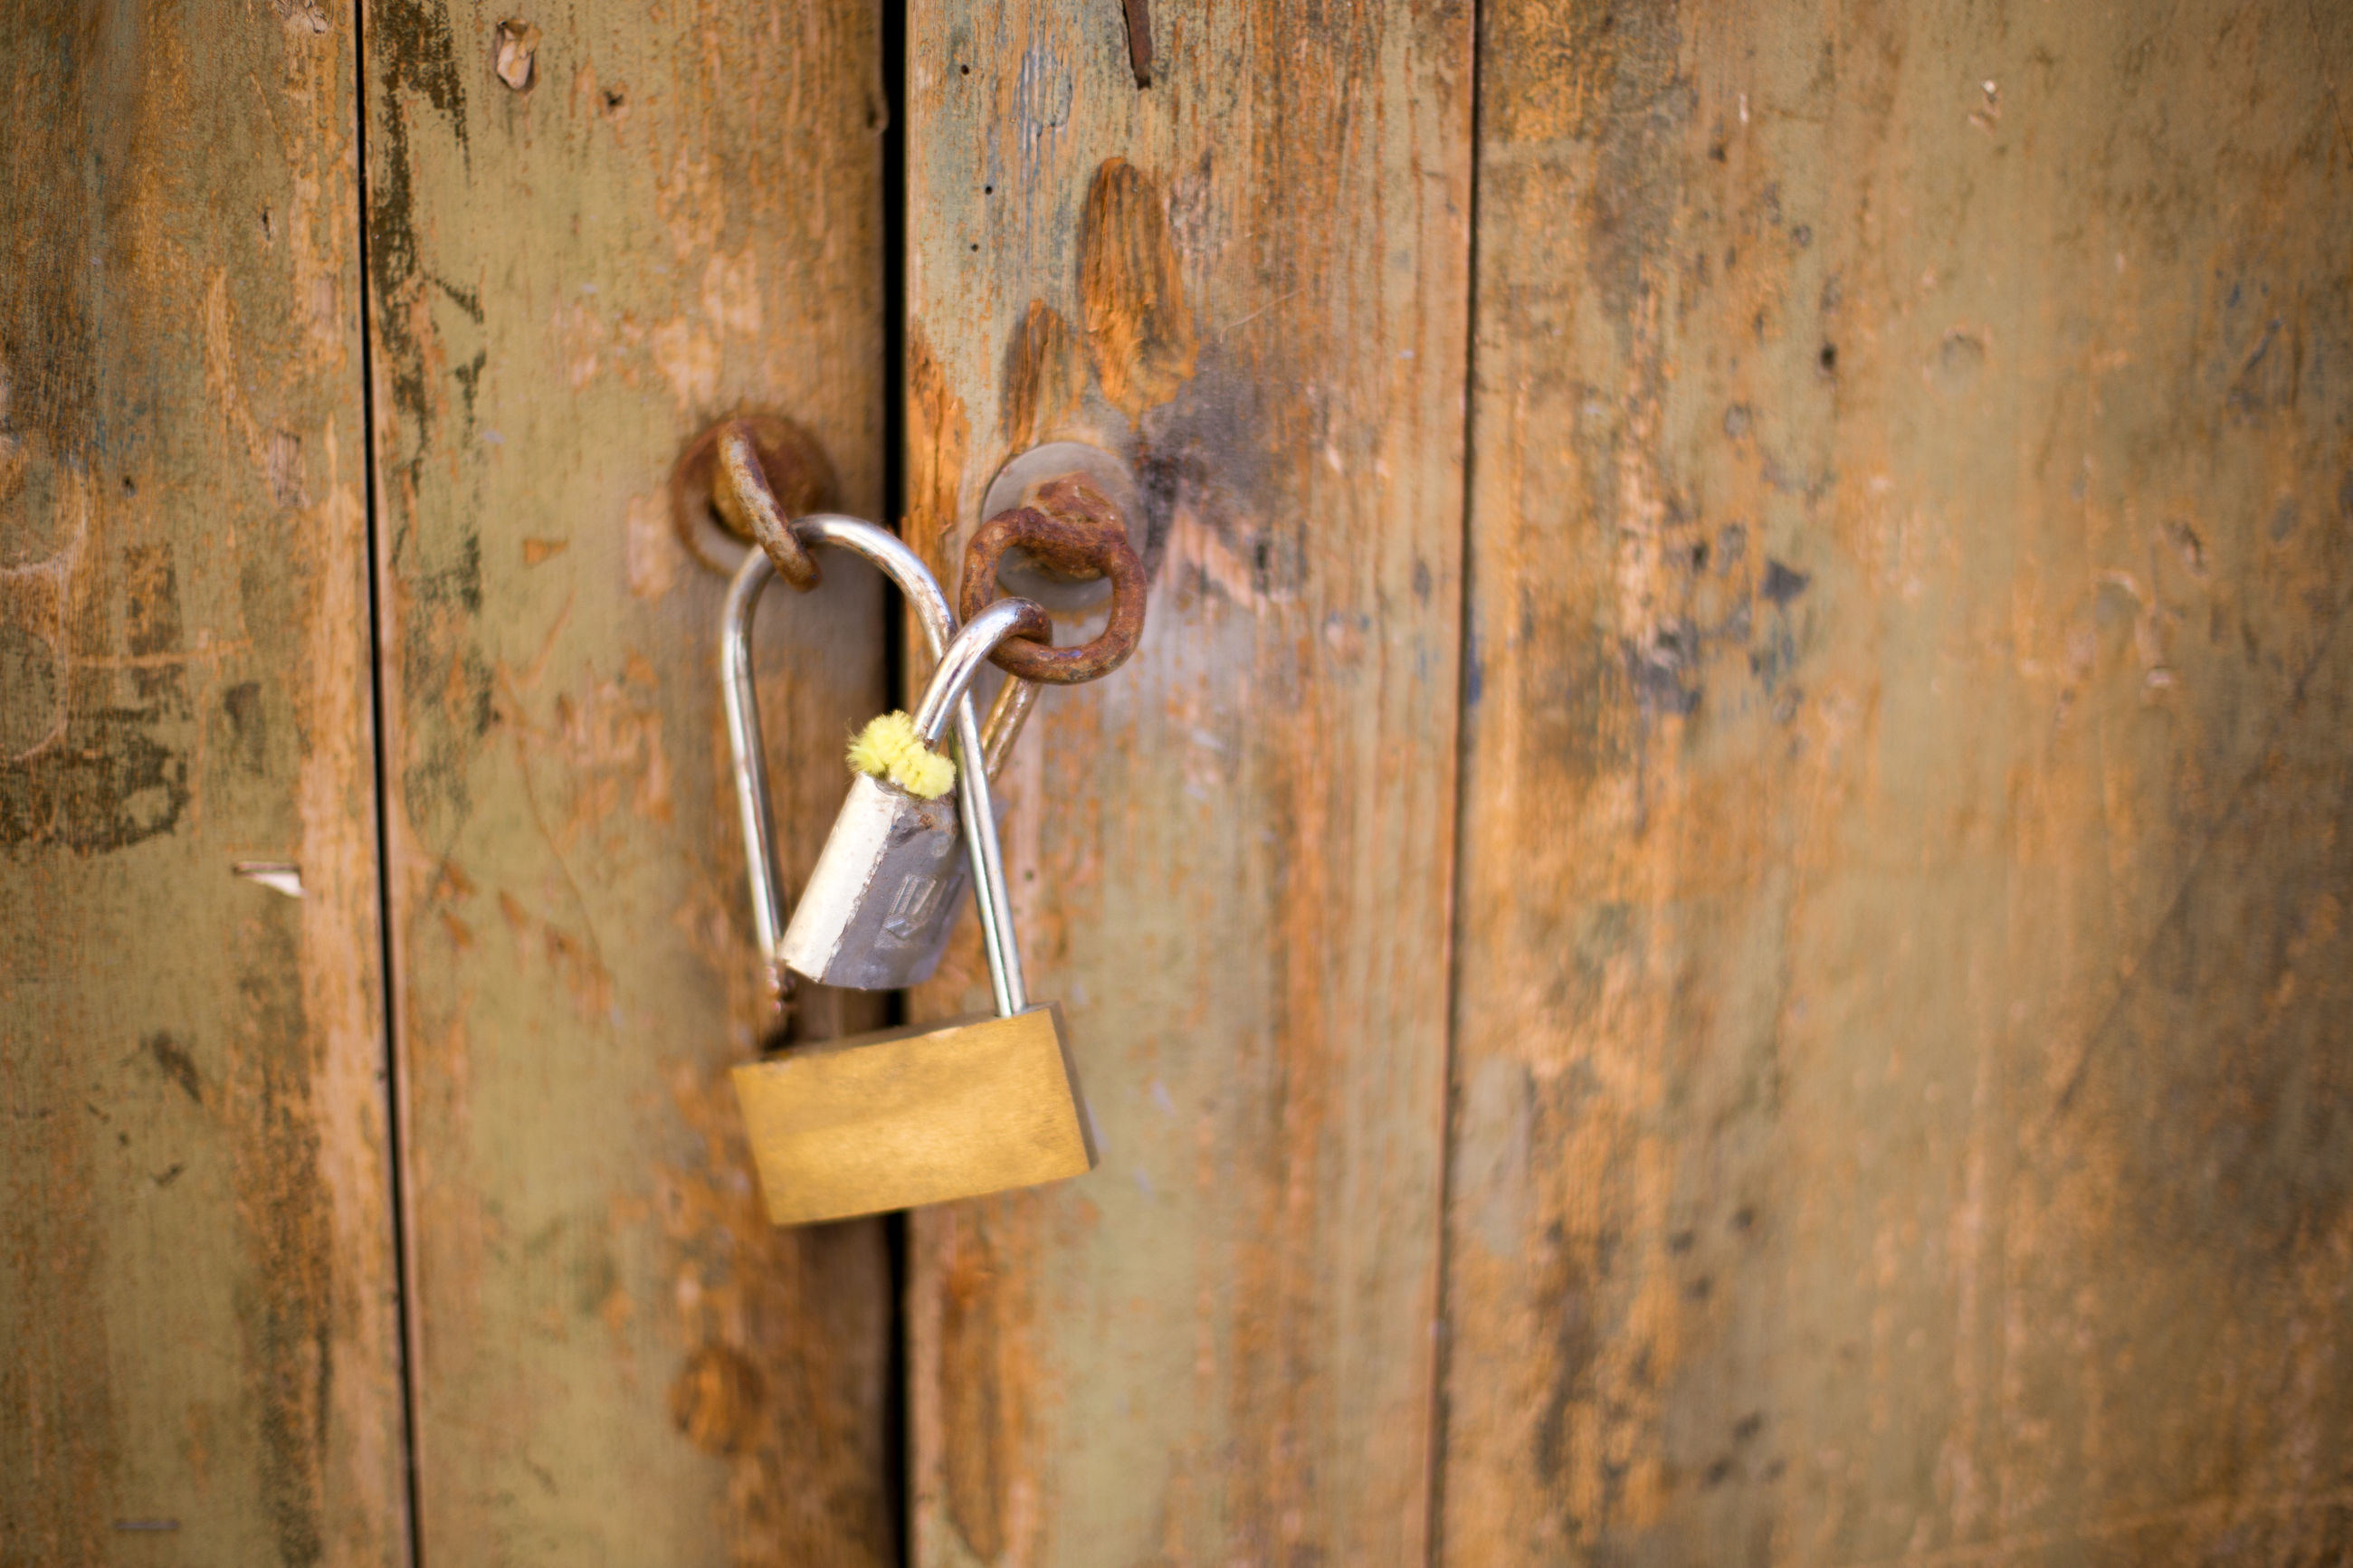 door, wood - material, metal, rusty, lock, no people, latch, protection, padlock, key, close-up, day, outdoors